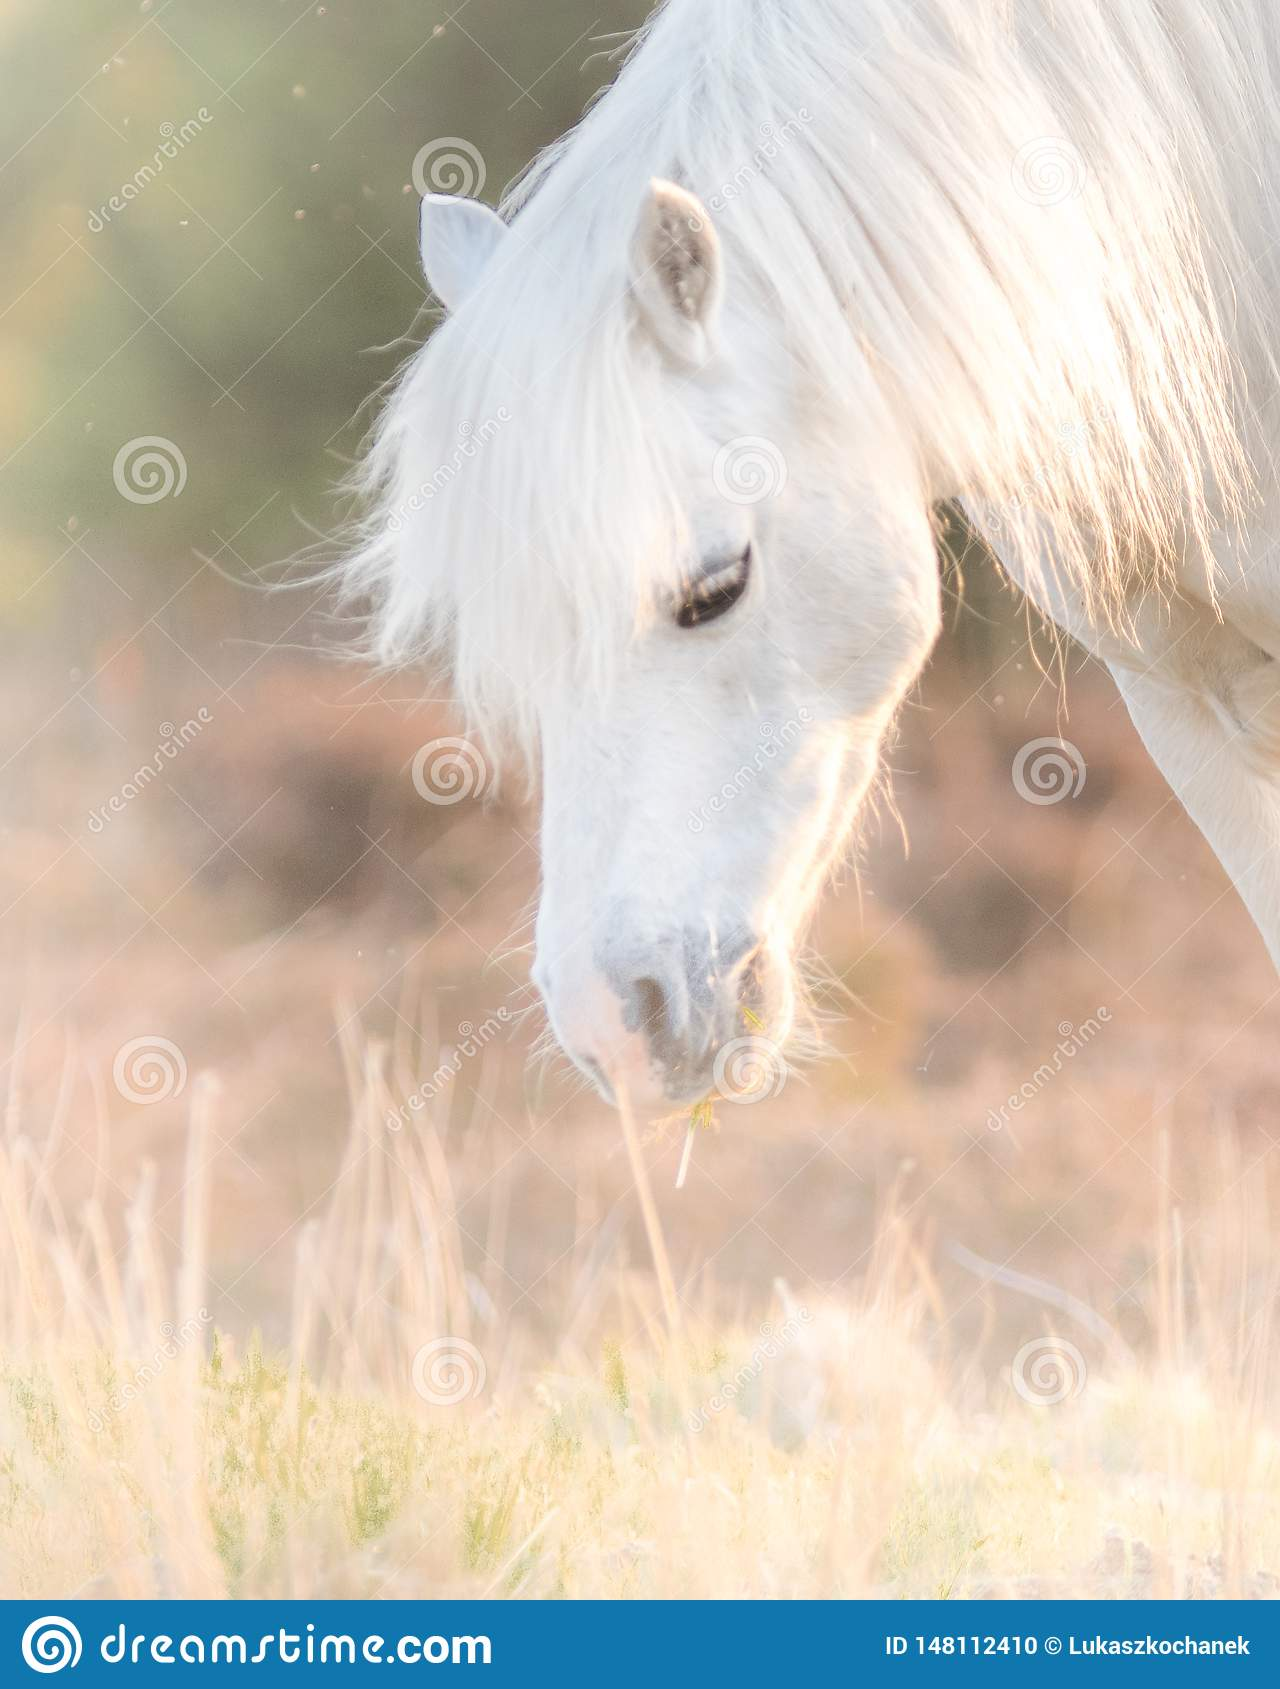 White Horse Beautiful White Stallion Running On A Meadow At Dawn Stock Photo Image Of Outdoor Beautiful 148112410